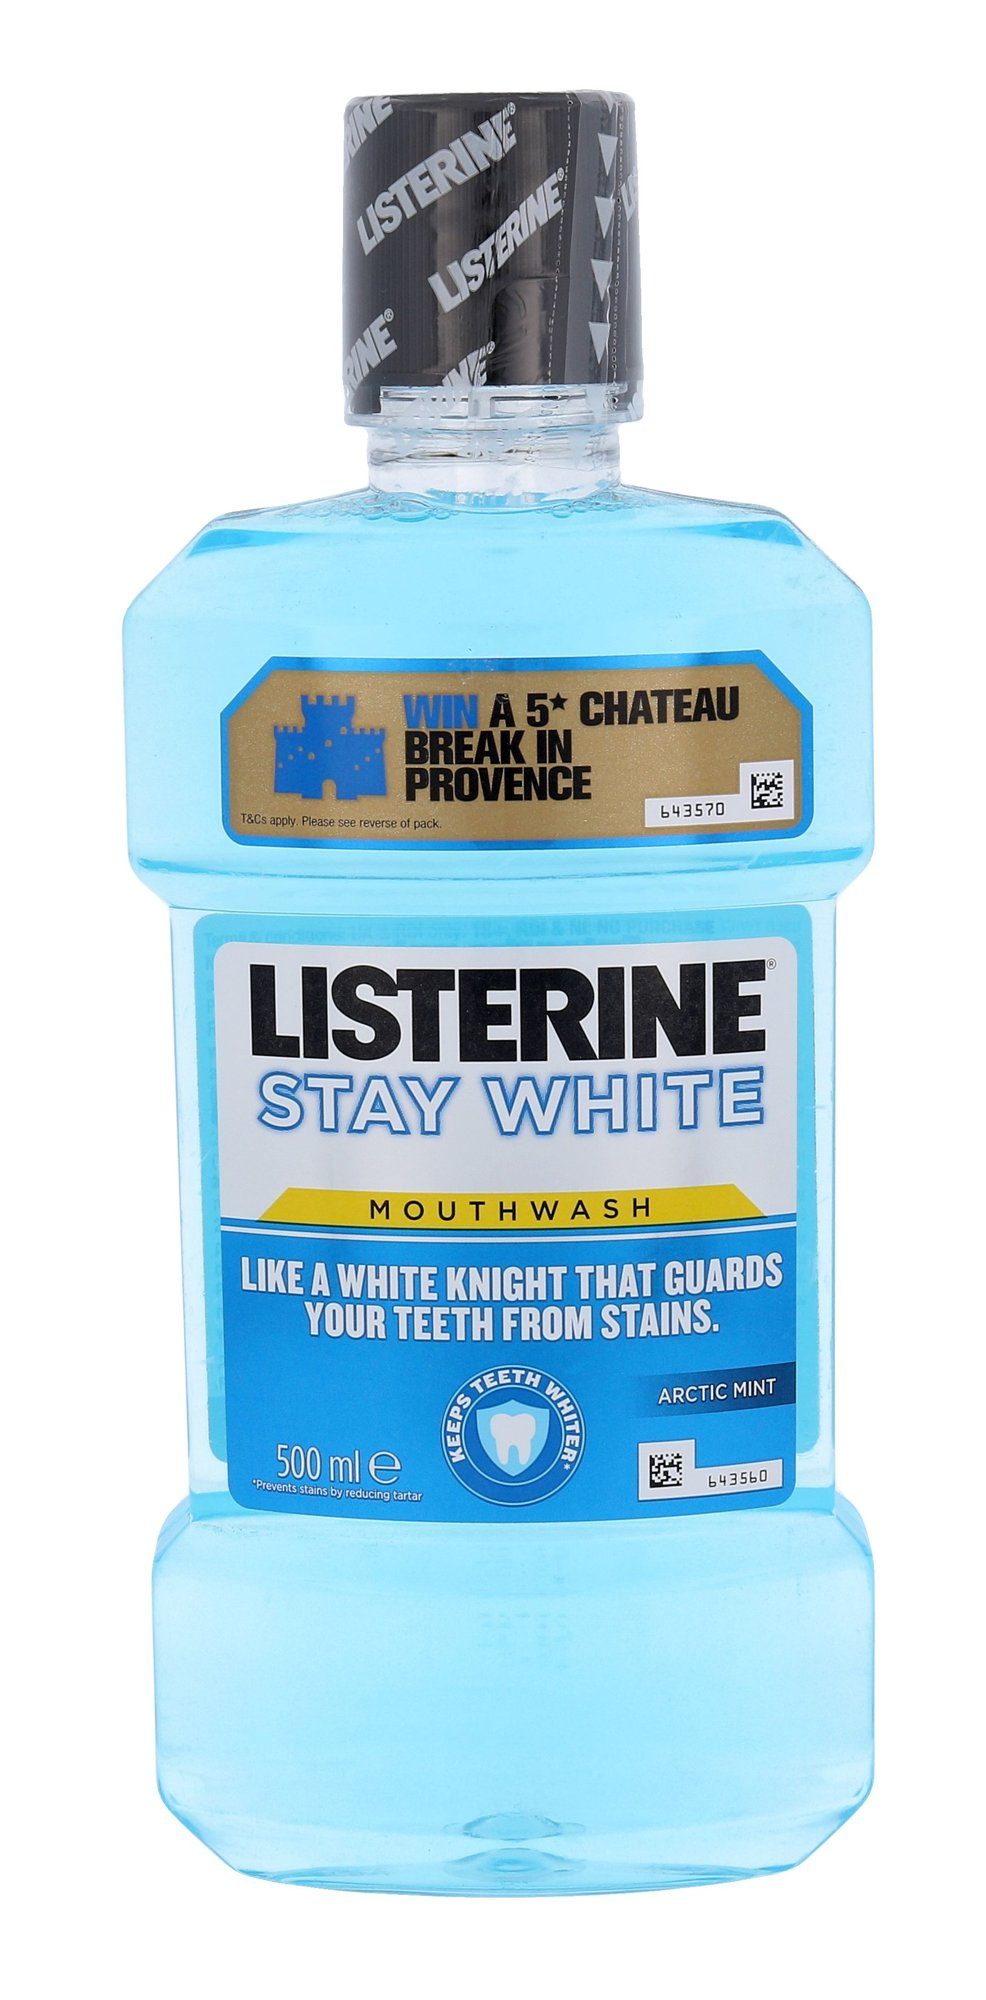 Listerine Mouthwash Cosmetic 500ml  Stay White